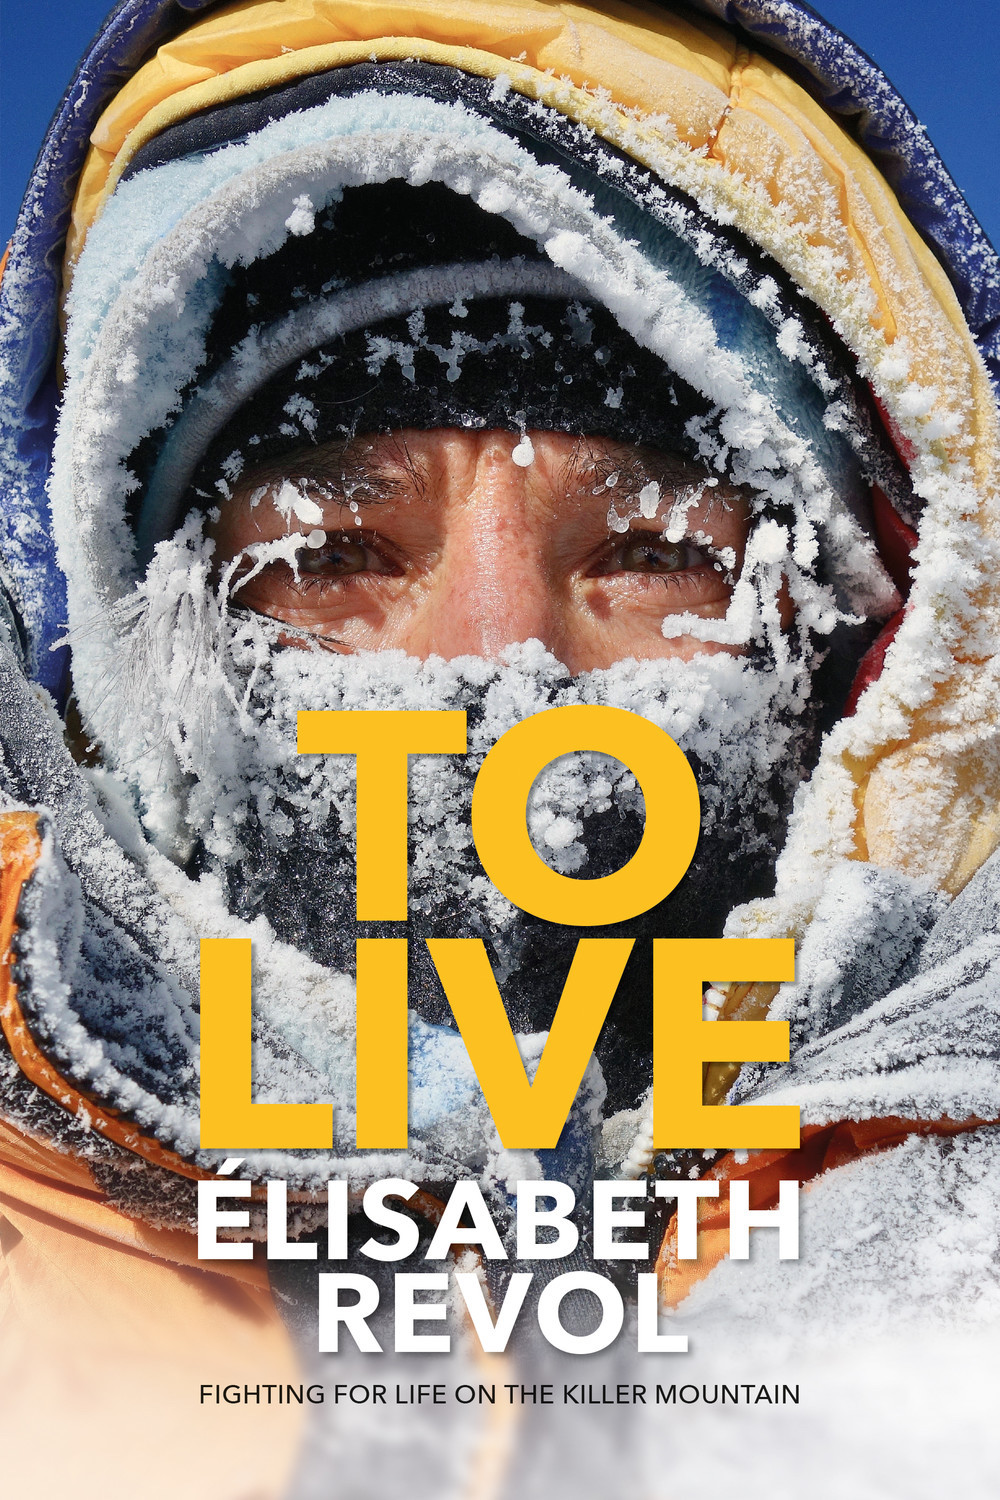 To Live: Fighting for Life on the Killer Mountain by Elisabeth Revol. Translated by Natalie Berry. Vertebrate Publishing, 2020. 154 pages. Hard cover, #24 (GBP). [Image] Courtesy Vertebrate Publishing